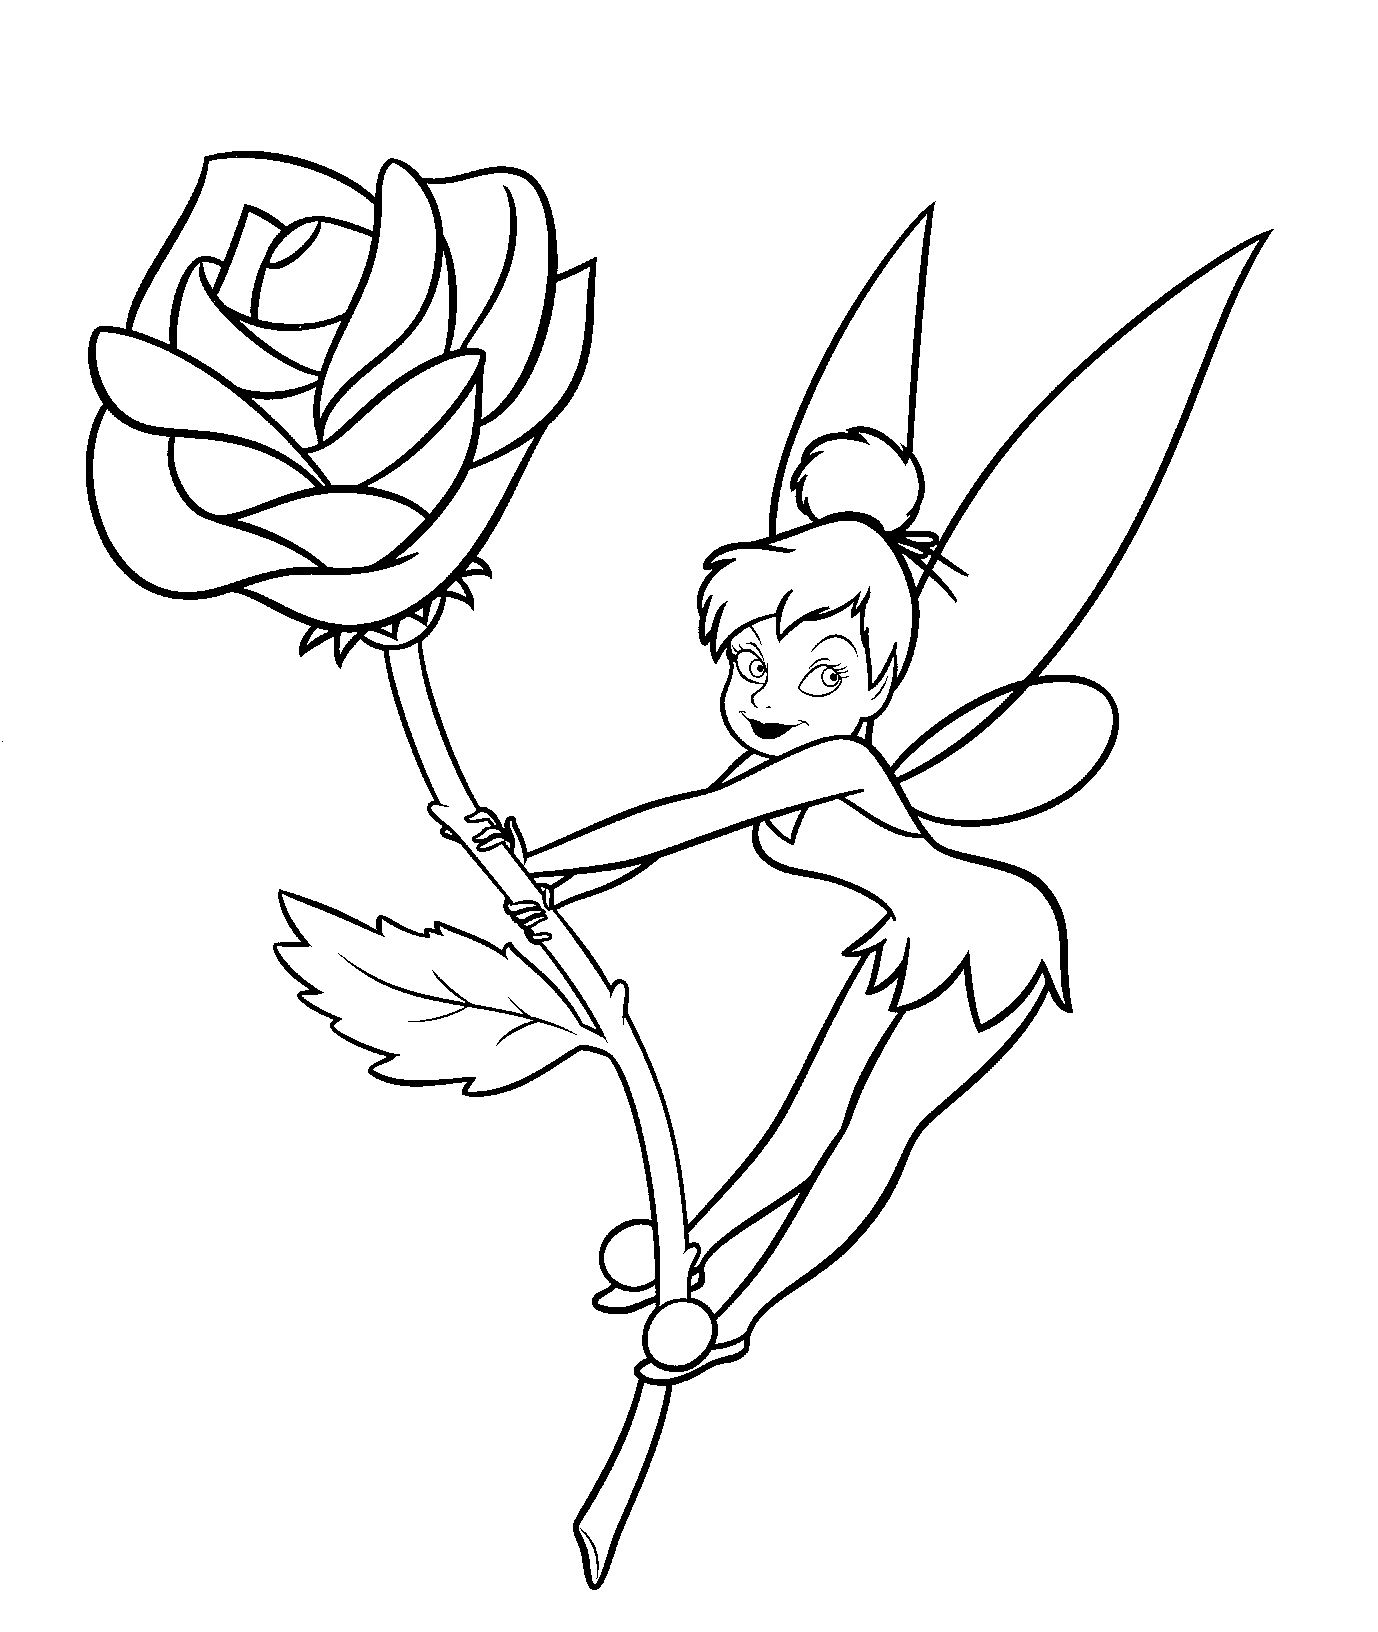 1378x1632 Tinkerbell Coloring Pages Tinkerbell Coloring Pages